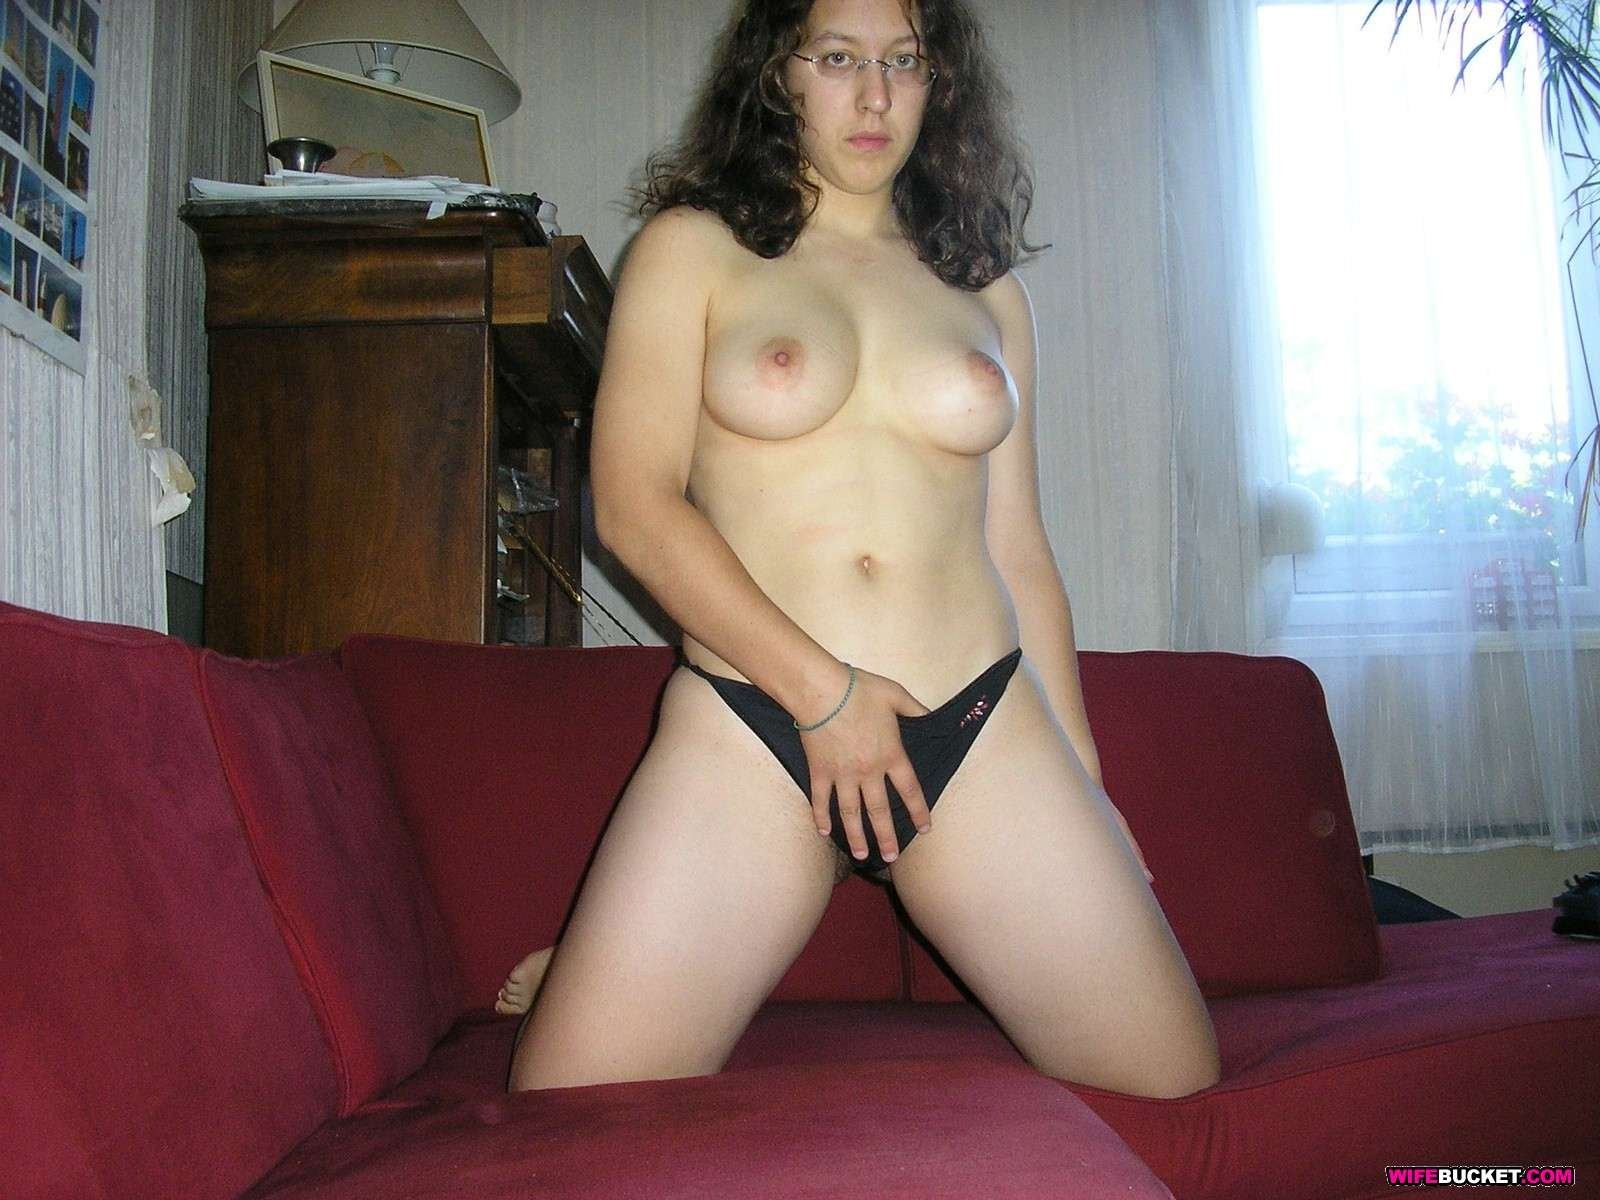 Hairy indian pussy hd